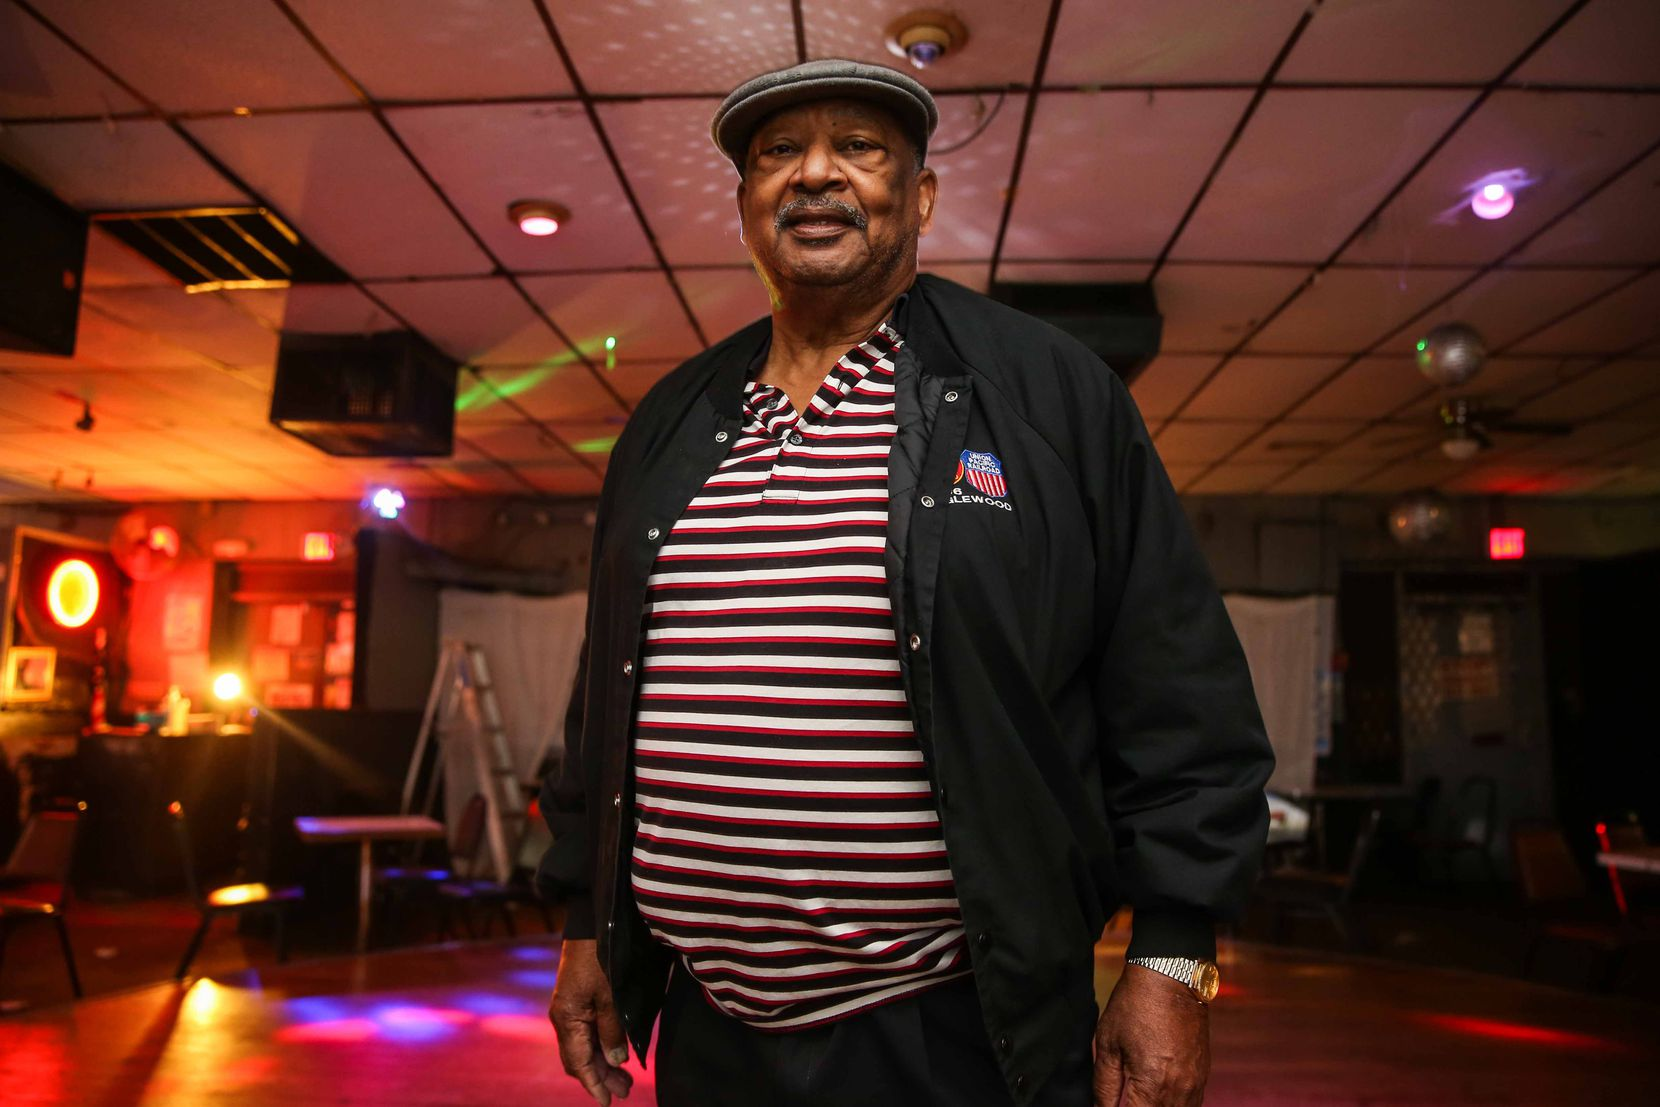 """Kliff Klub owner Bill Frazier """"was really just trying to take care of the people who were taking care of his business,"""" says Venita Brown, a  bartender who started there as a waitress in 1990. """"It was a club, but it was a club of family and friends. I think it leaves as the heart of Oak Cliff."""""""